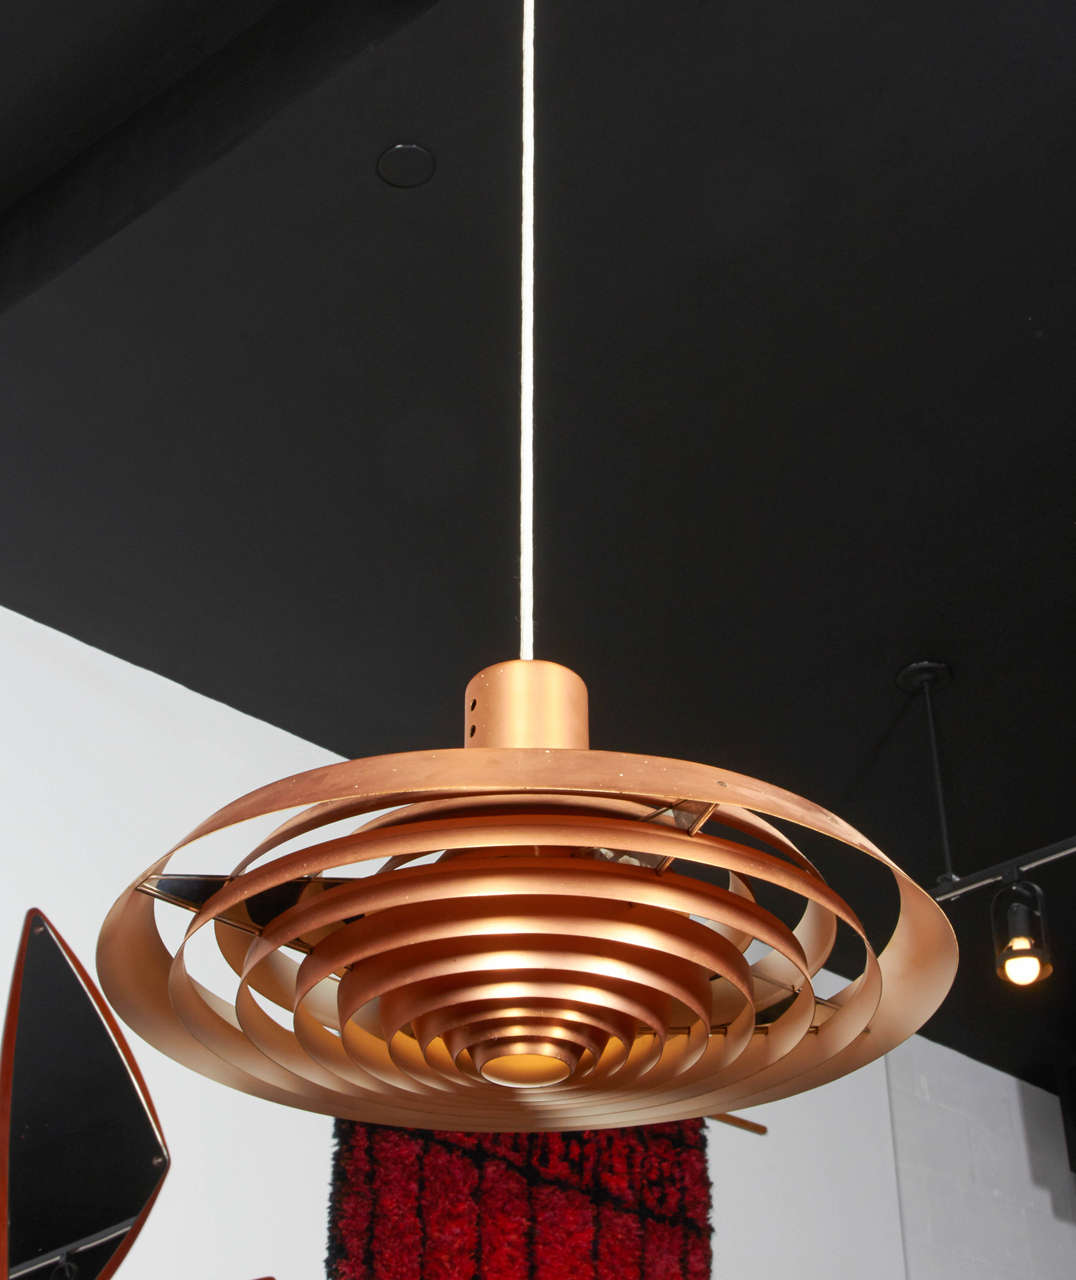 Pavillion Pendant Lamp in Copper by Poul Henningsen 2